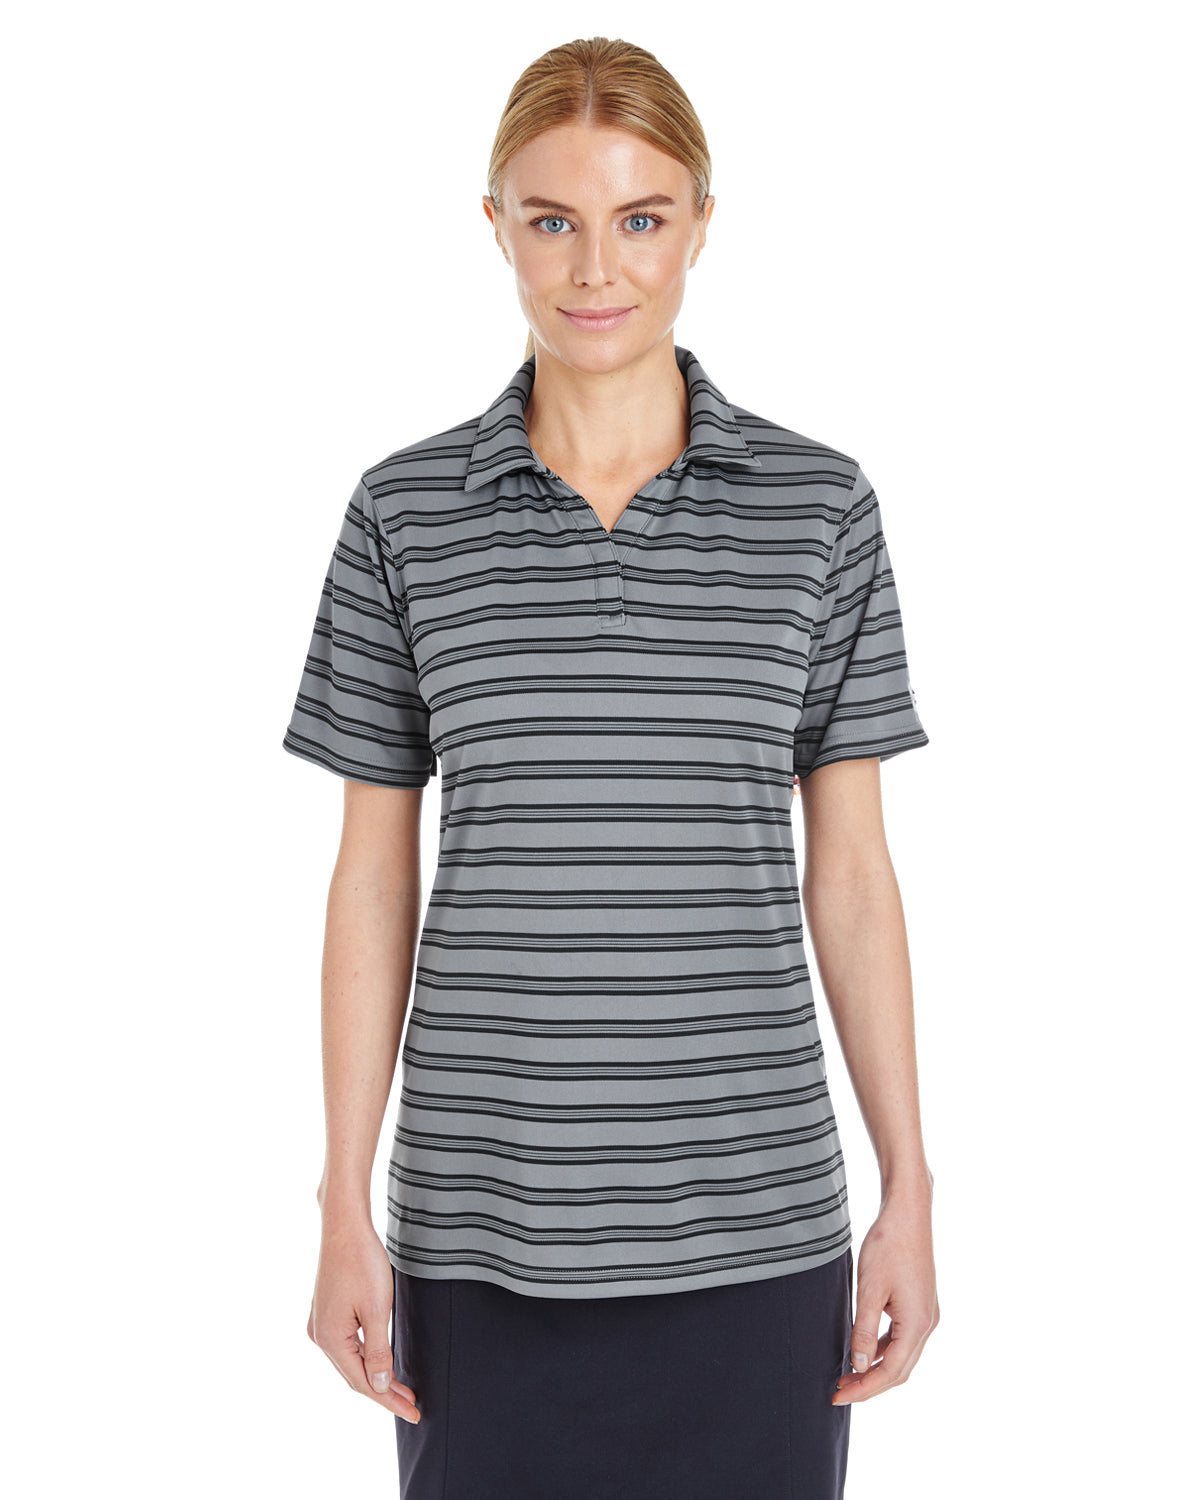 UNDER ARMOUR LADIES' UA CORP TECH STRIPE POLO